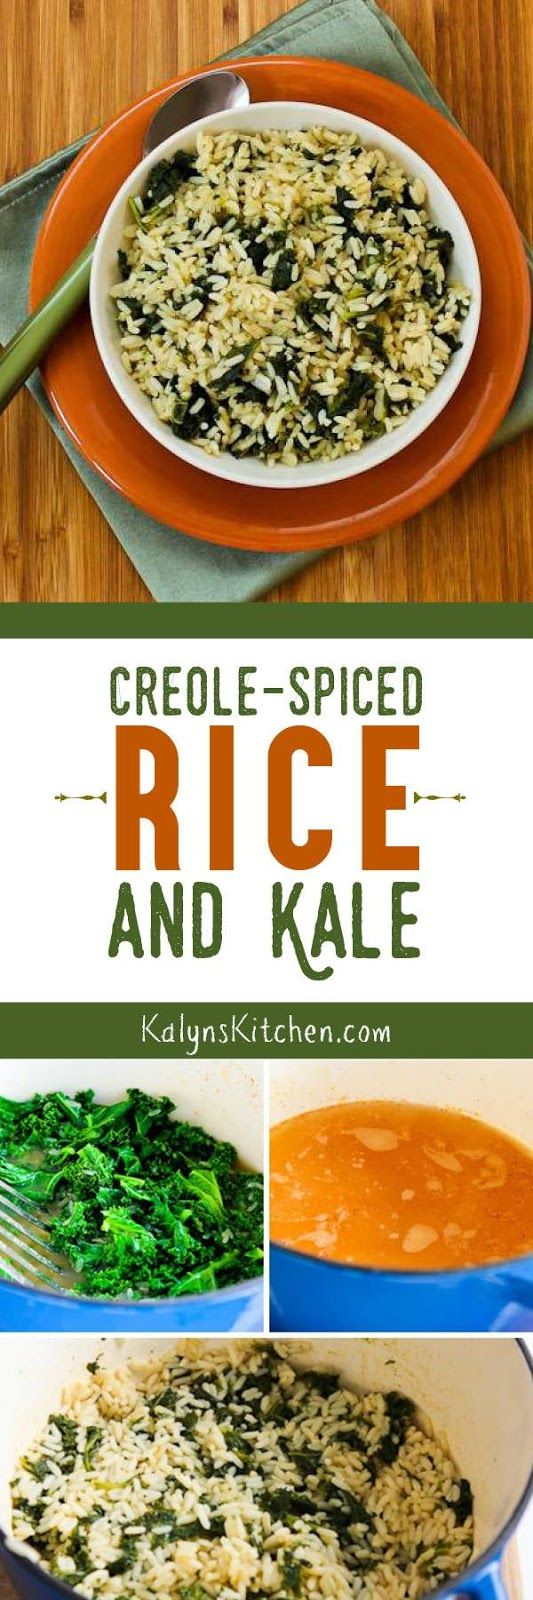 Creole-Spiced Rice and Kale is a tasty rice dish with lots of healthy kale! [found on KalynsKitchen.com]